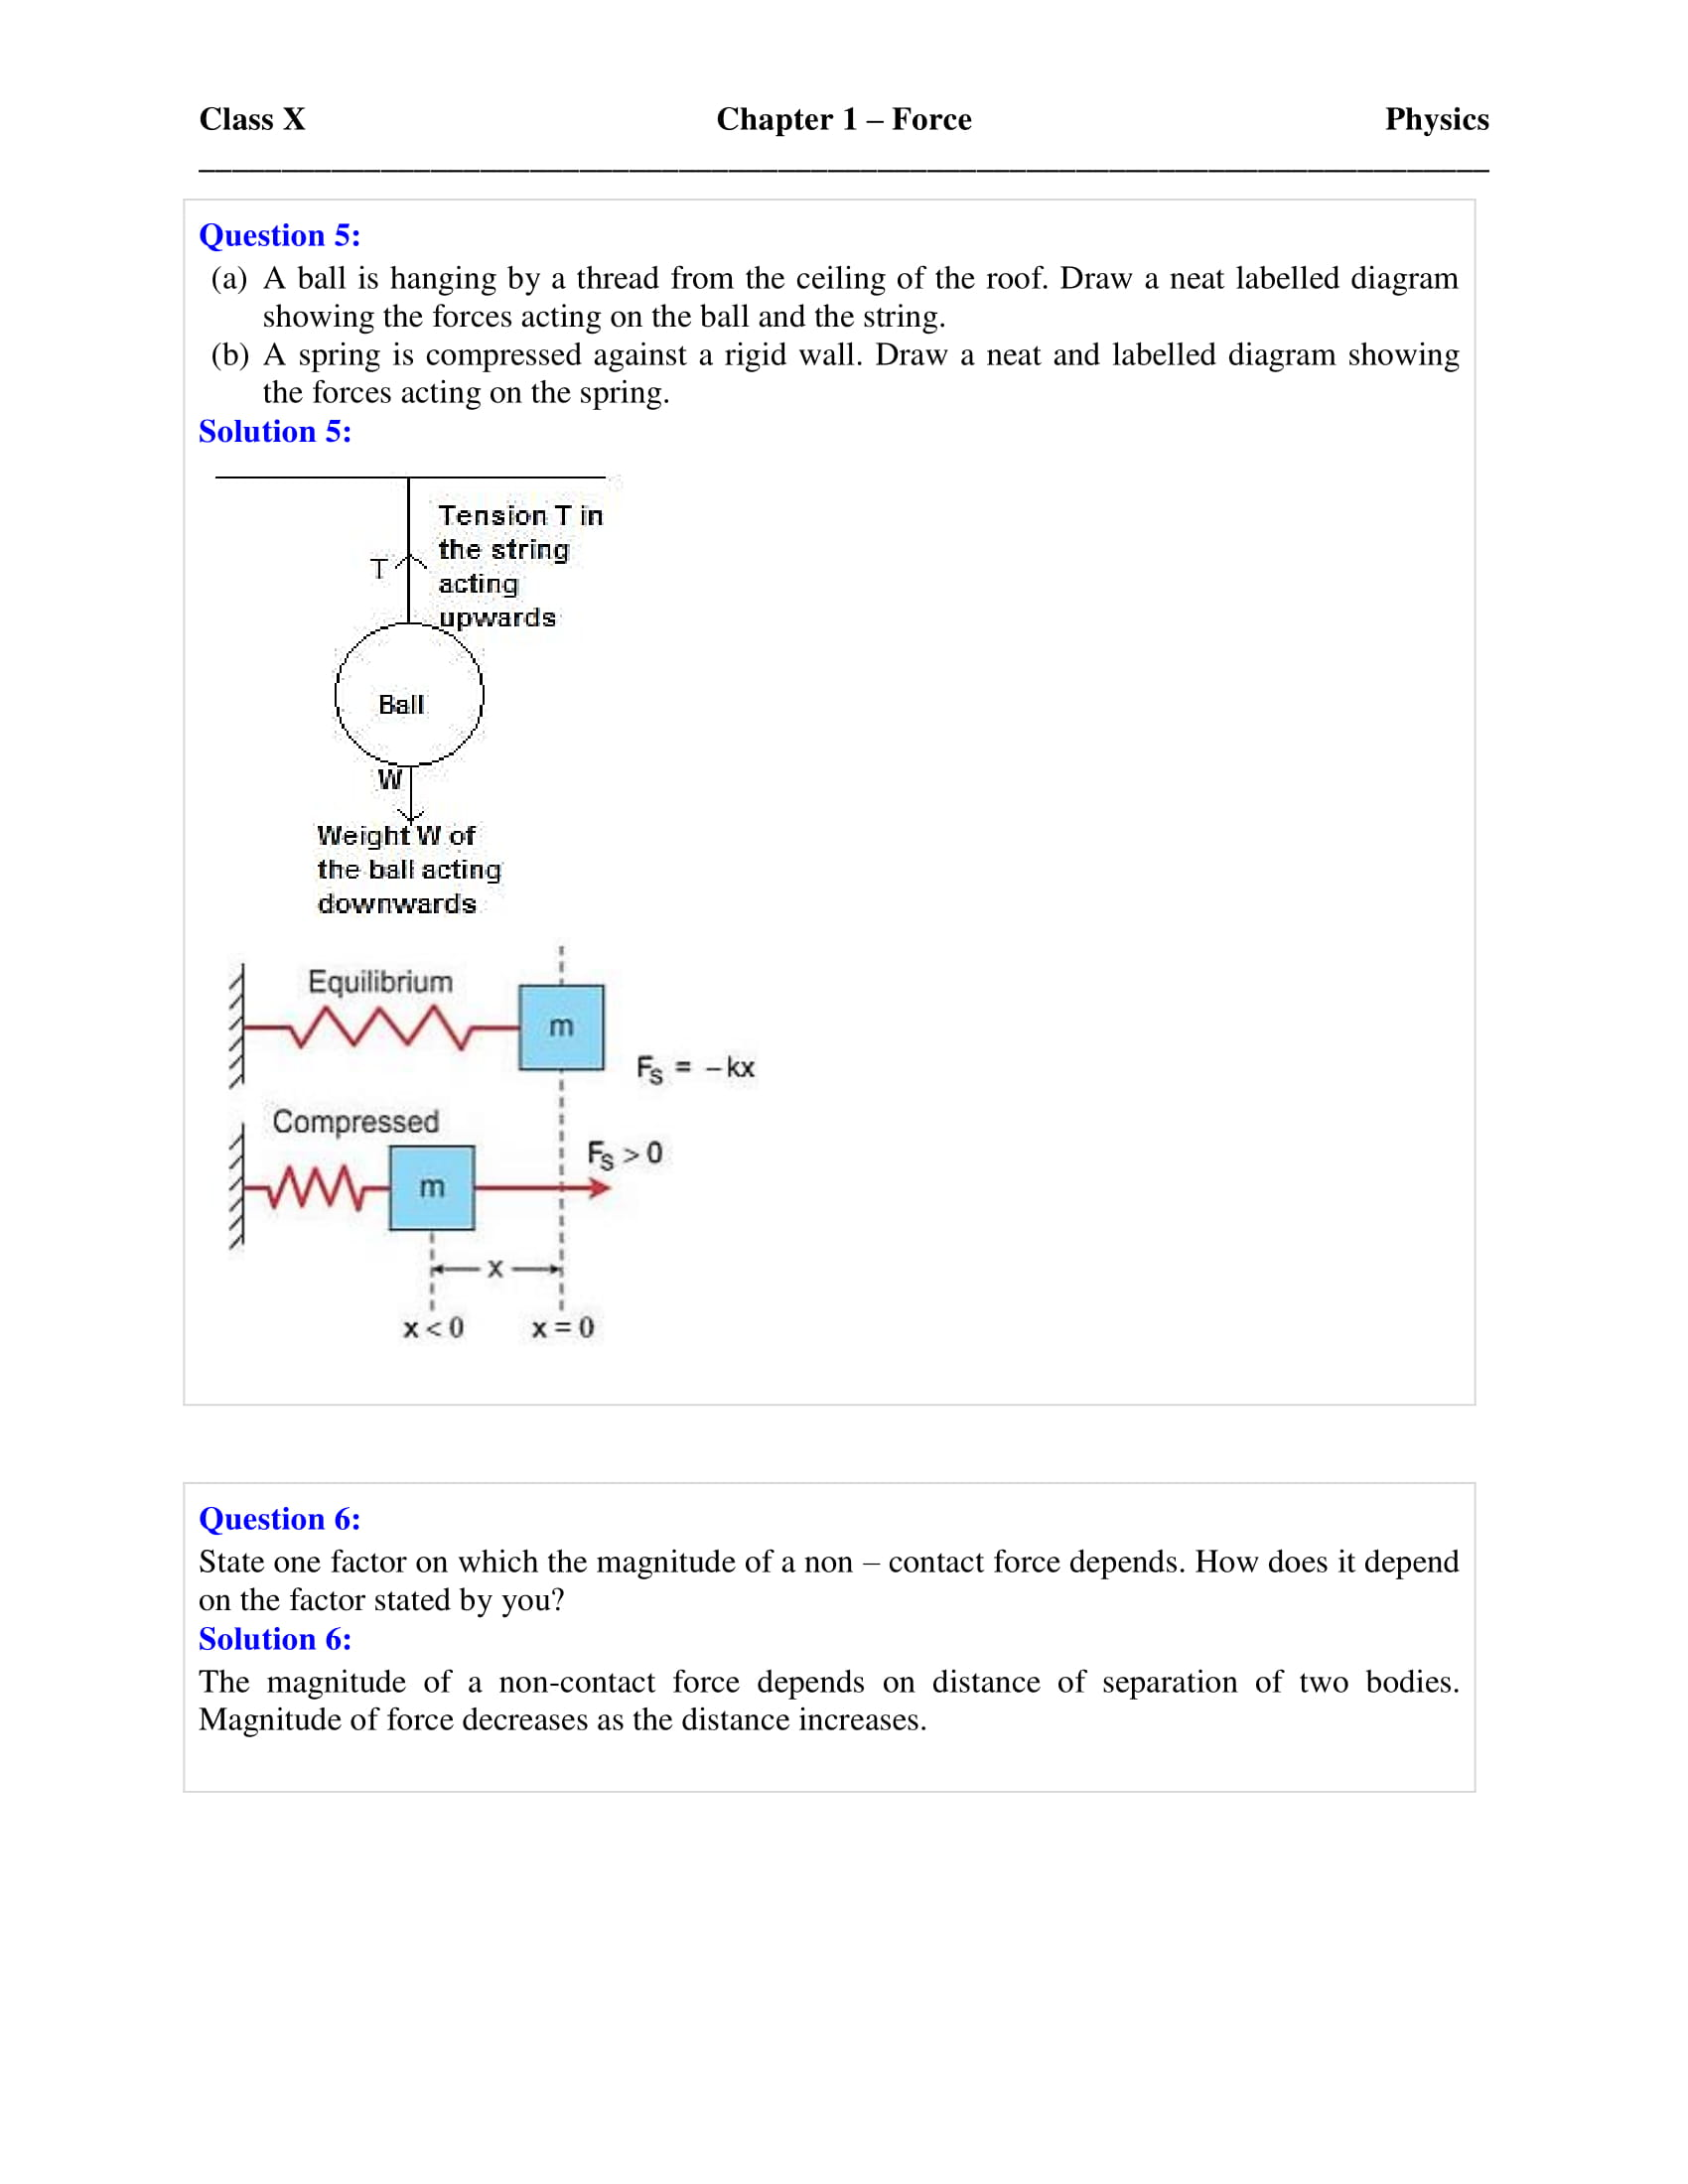 icse-selina-physics-solutions-class-10-chapter-1-force-02